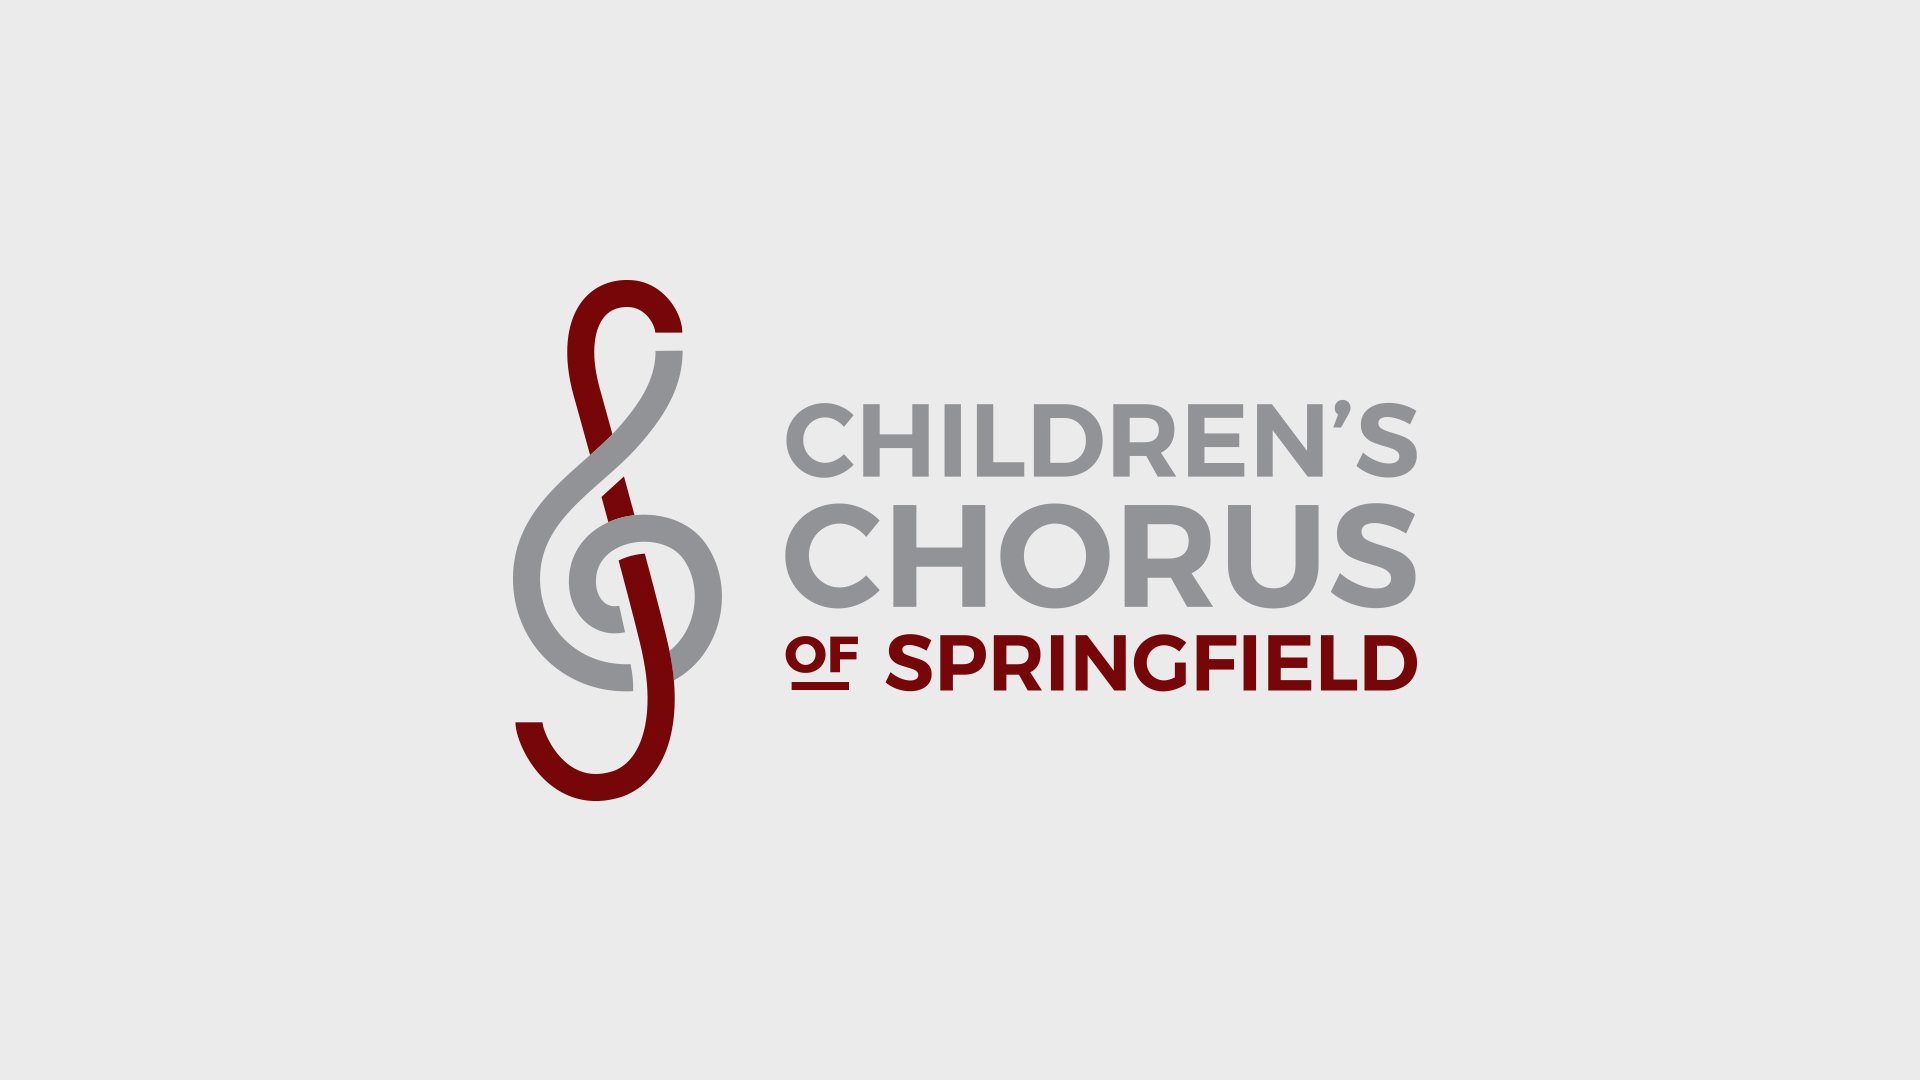 Children's Chorus of Springfield - Children's Chorus Of Springfield is a premier, auditioned treble choir for ages 7-14. We will perform high quality, challenging and fun choral literature encompassing various genres of music (classical, folk songs, spirituals, broadway & multi-cultural). Students will receive professional-level vocal training and music theory instruction. We will cultivate a structured and dynamic rehearsal environment in which each student will be encouraged, engaged, and inspired.